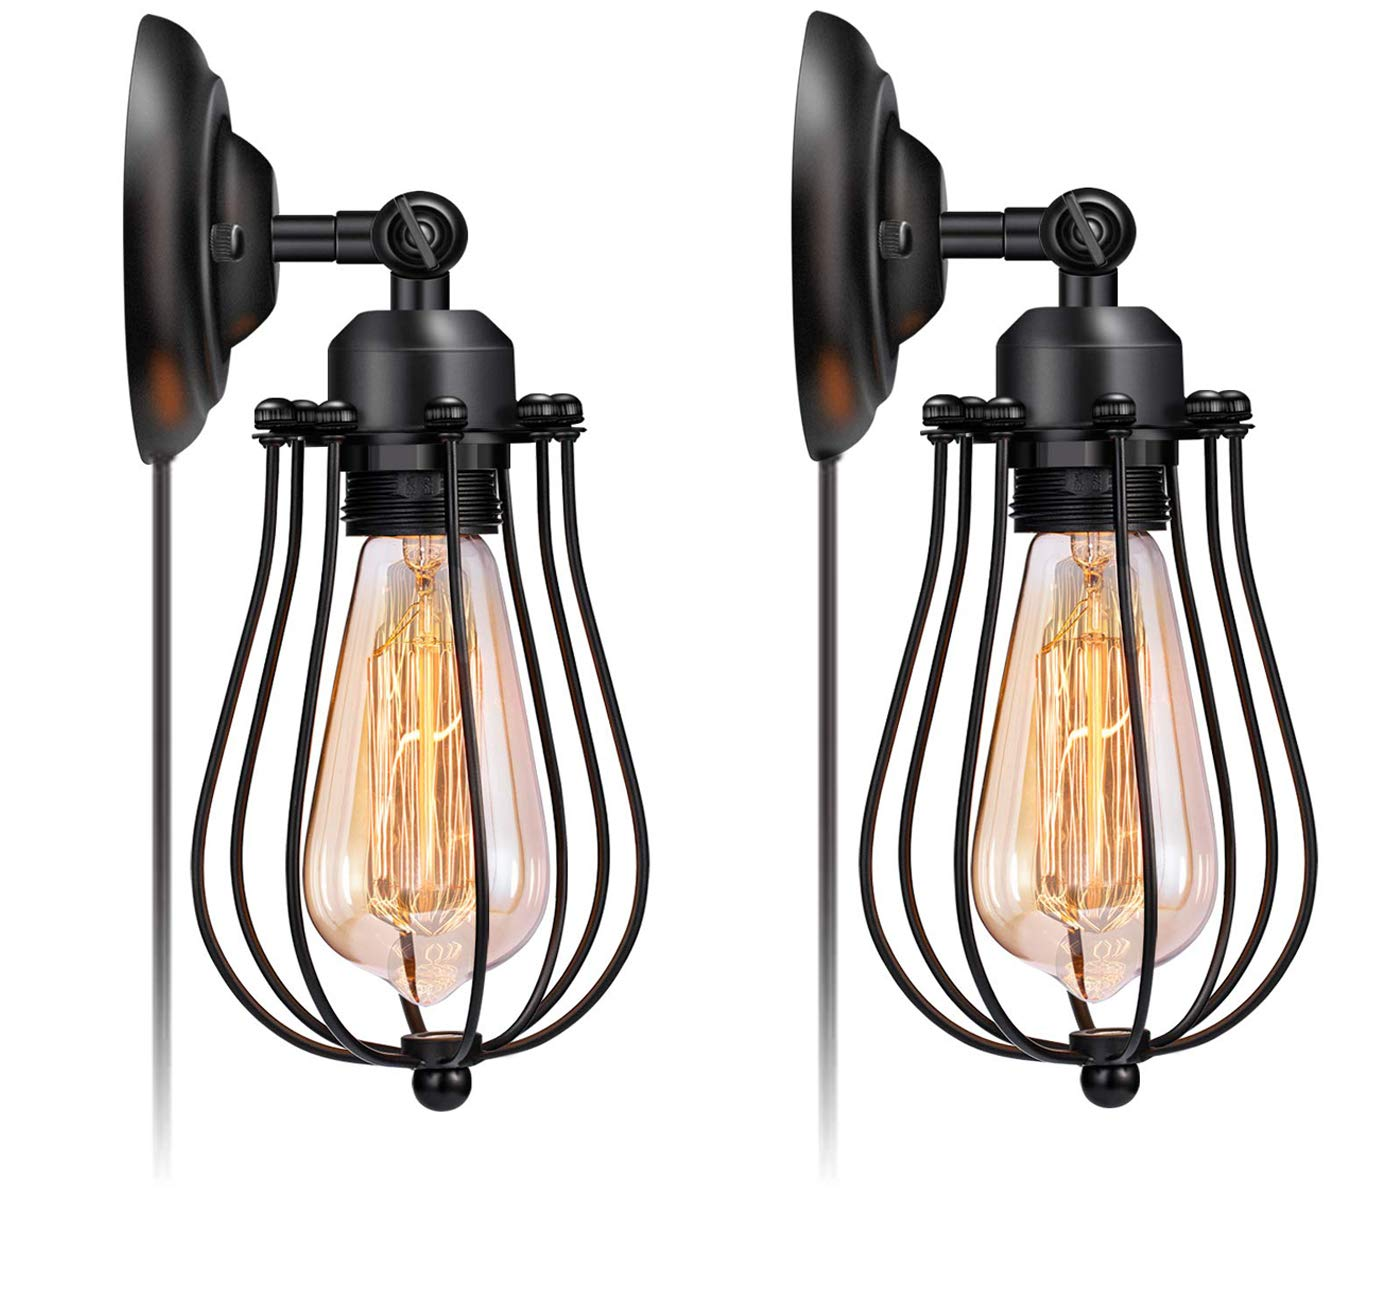 Licperron Wire Cage Wall Sconce Plug in Industrial Wall Light E26 Base Vintage Style Plug in Sconce Fixture for Headboard Bedroom Garage Porch 2 Pack(Need Hardwired))